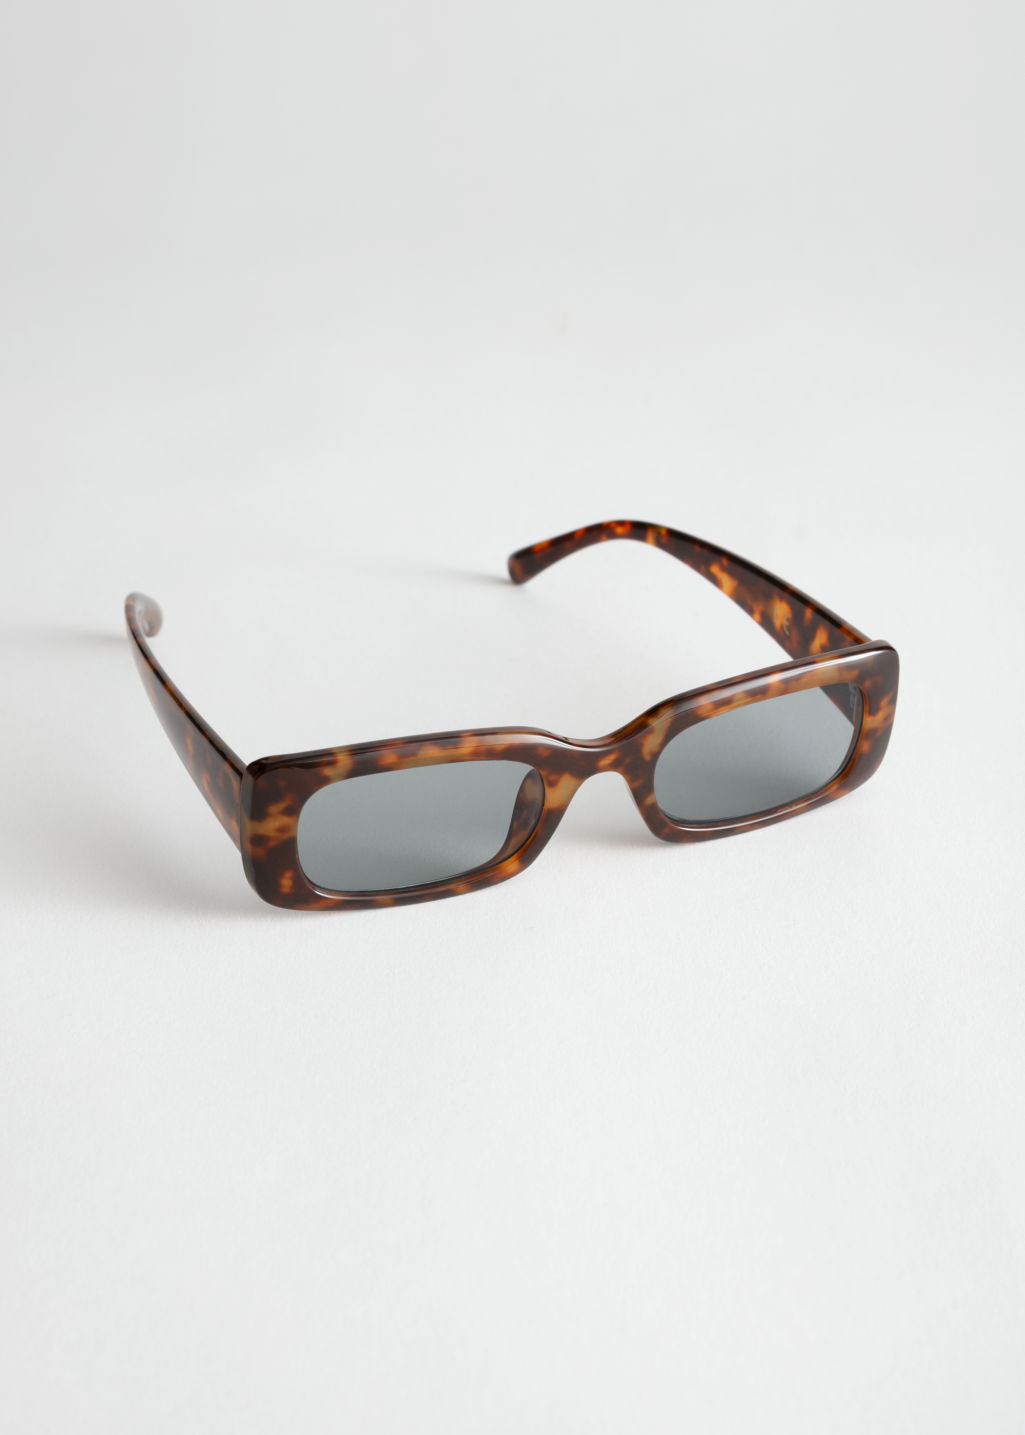 796019aaa9a Rectangular Frame Sunglasses - Tortoise - Square frame -   Other ...